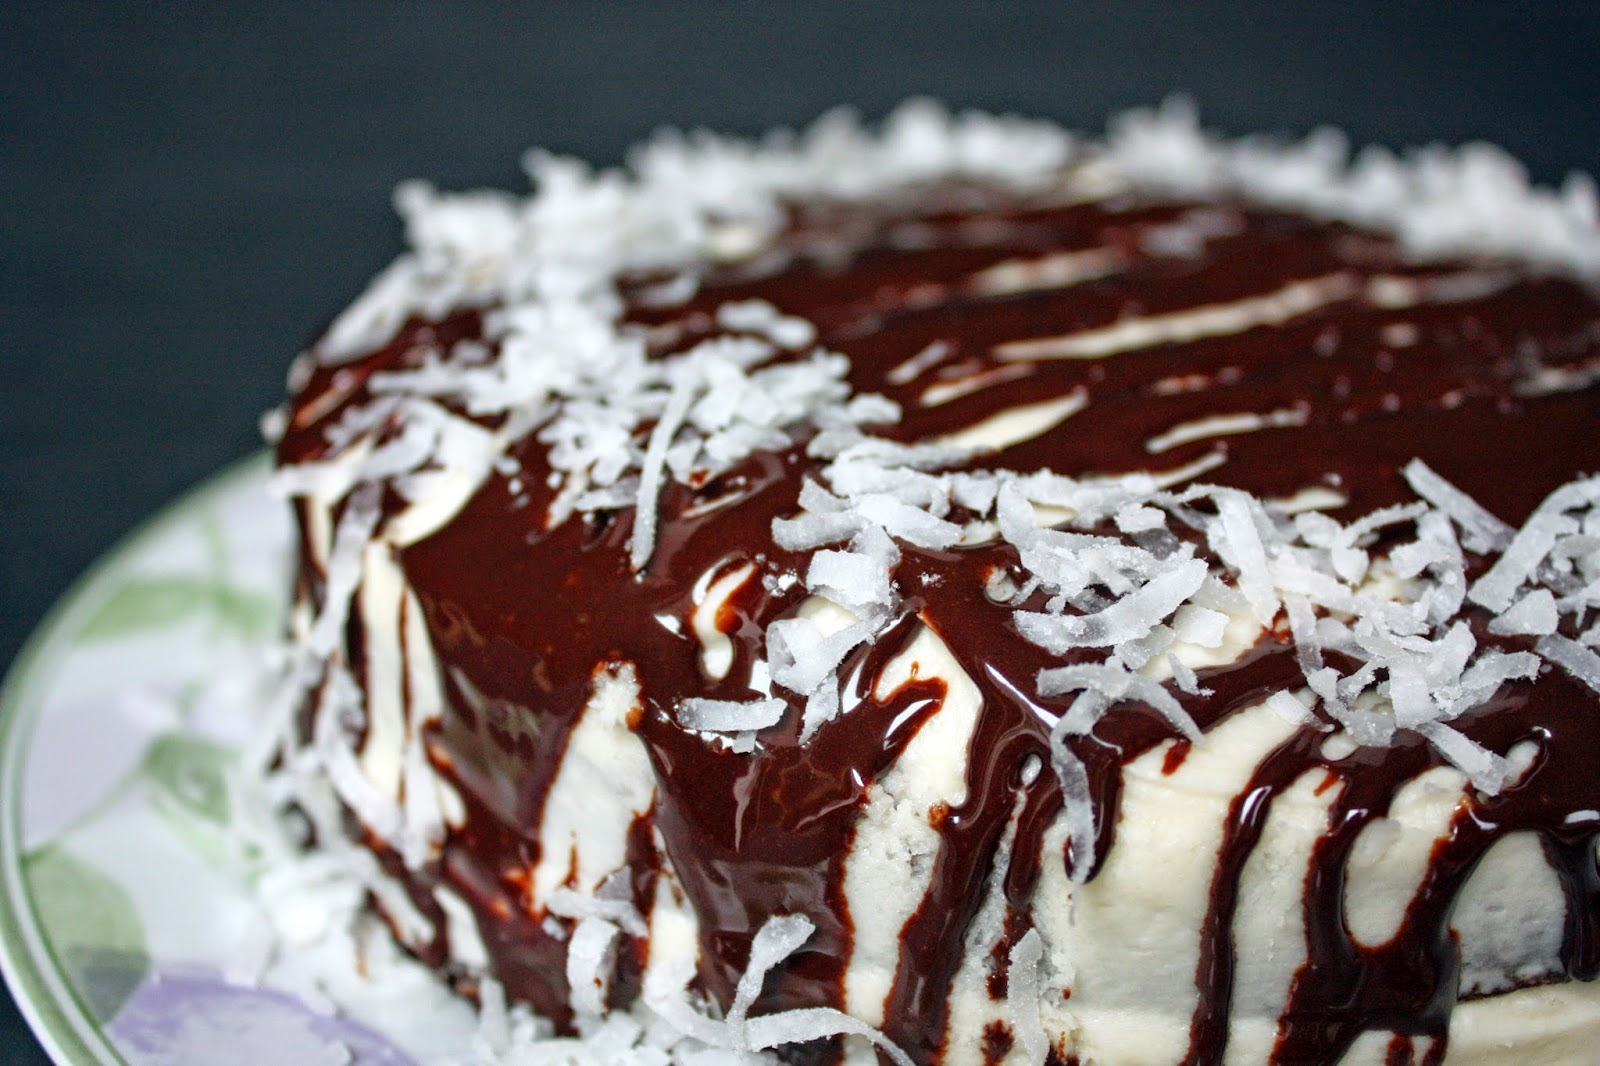 vegan chocolate layer cake with chili and coconut